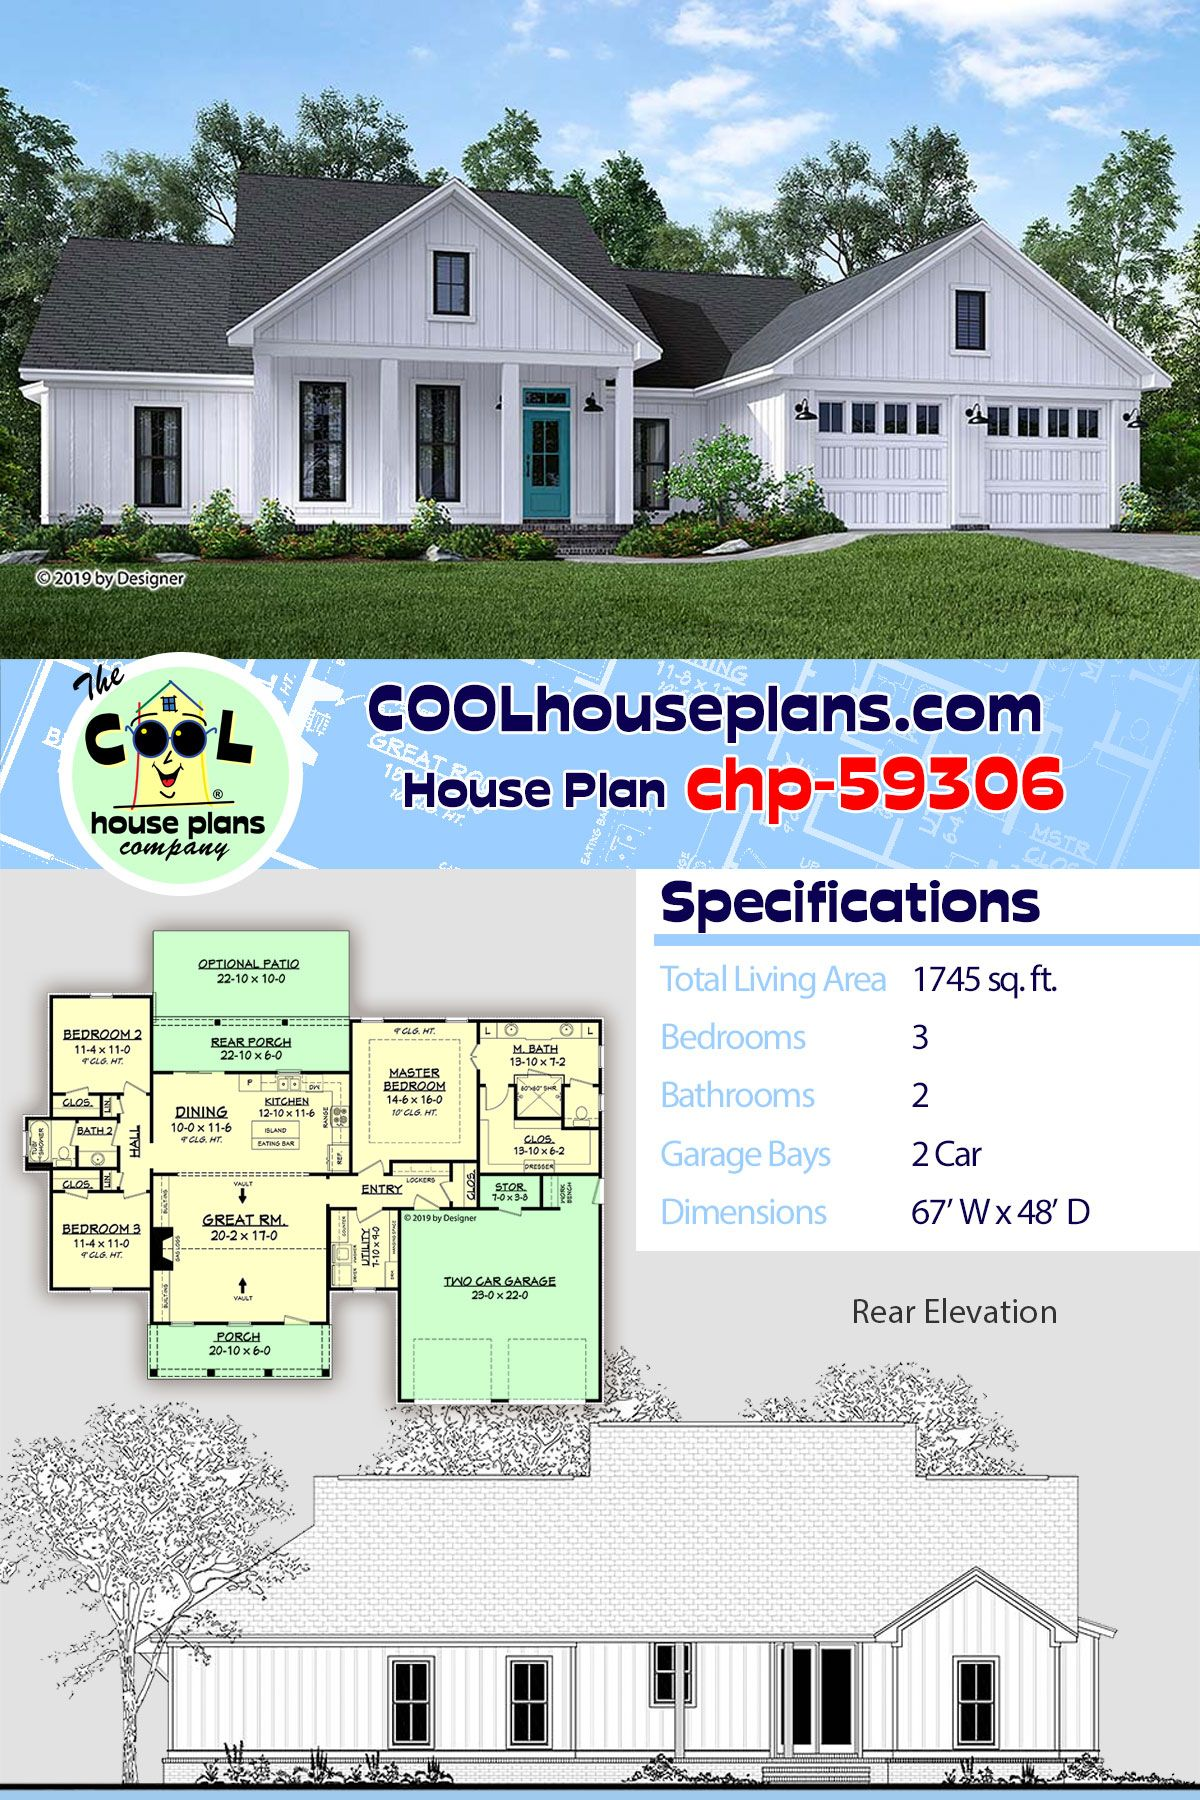 Southern Style House Plan 51985 With 3 Bed 2 Bath 2 Car Garage House Plans Best House Plans Farmhouse Style House